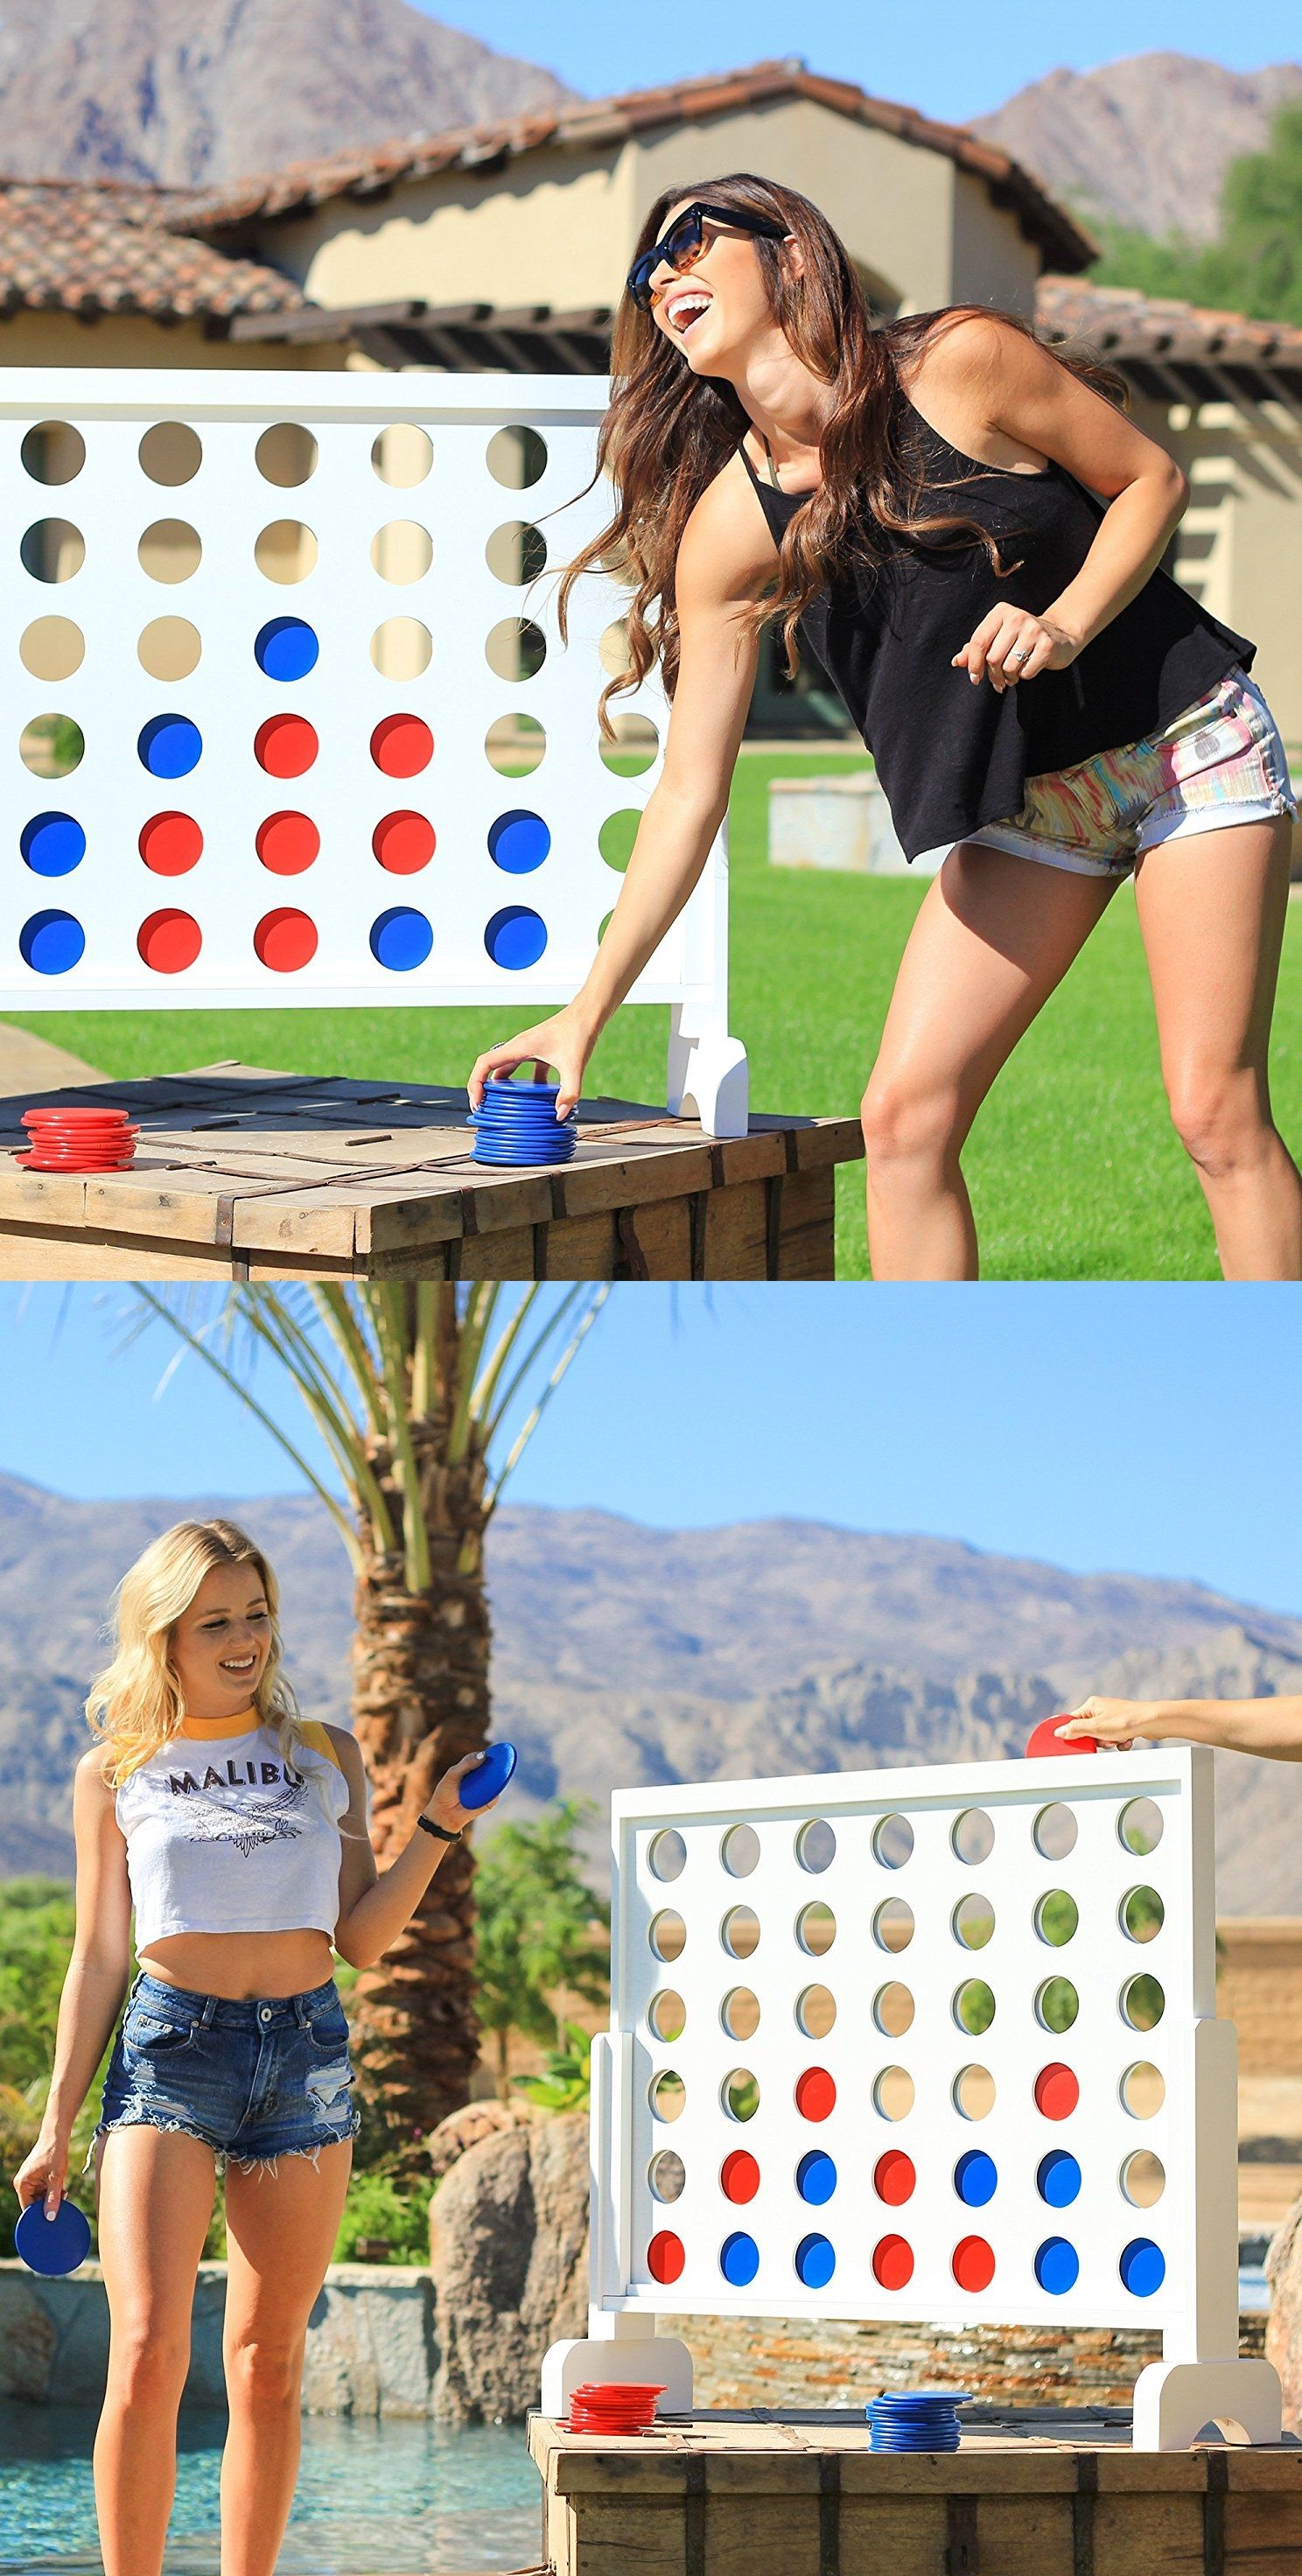 LOVE this giant 4 in a row game, it's just like connect 4